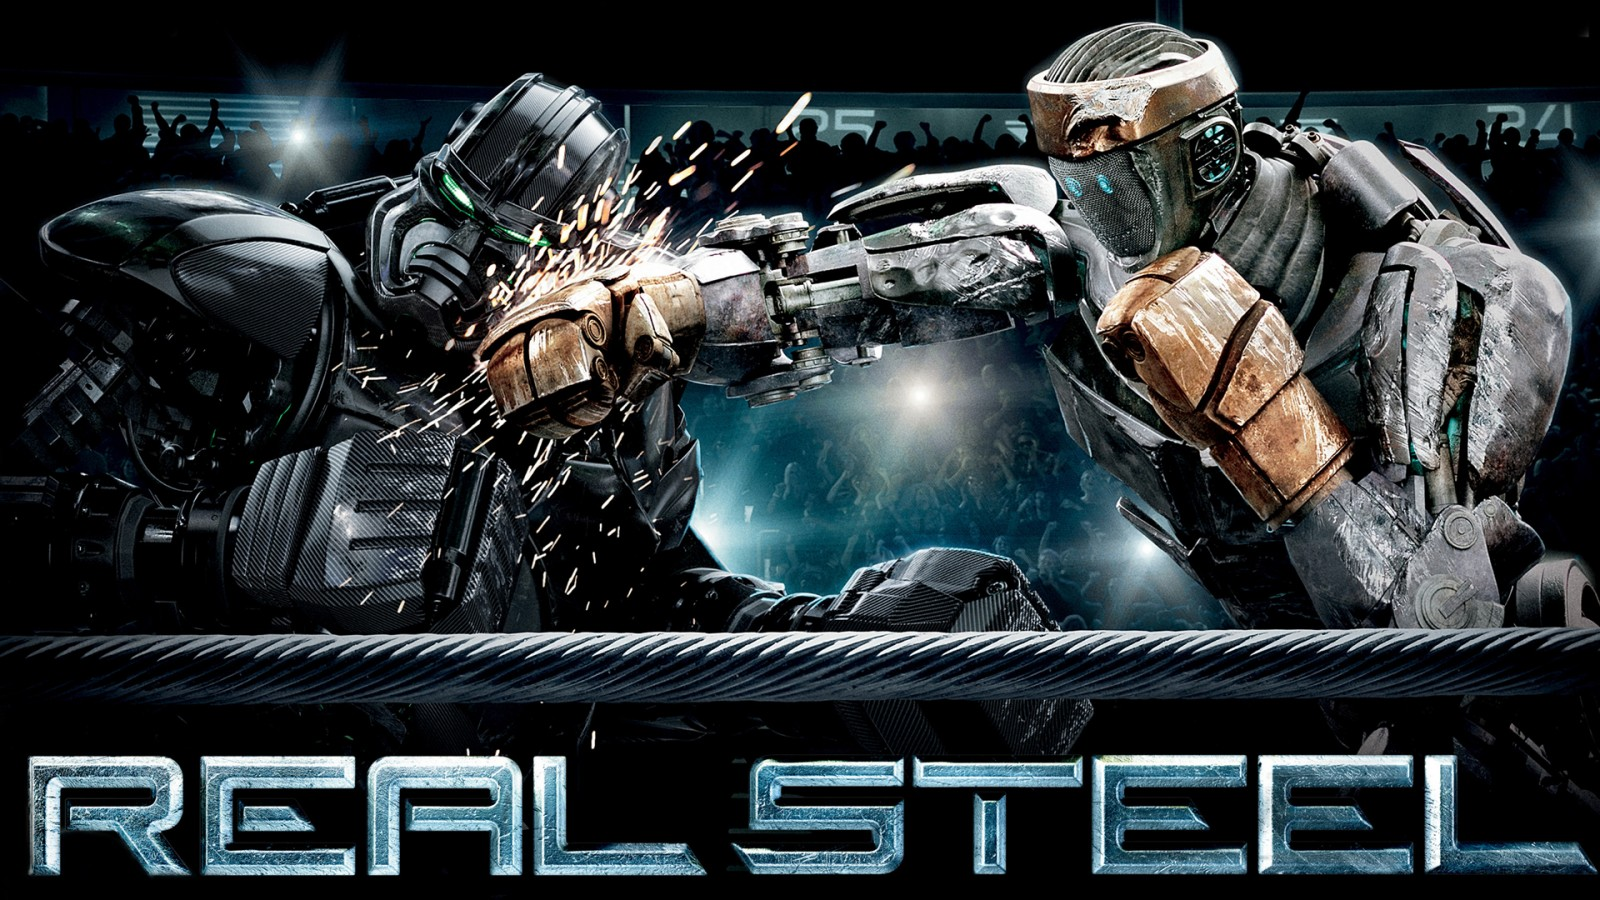 Boxing Iphone Wallpaper Real Steel Battle Wallpapers Hd Wallpapers Id 10393